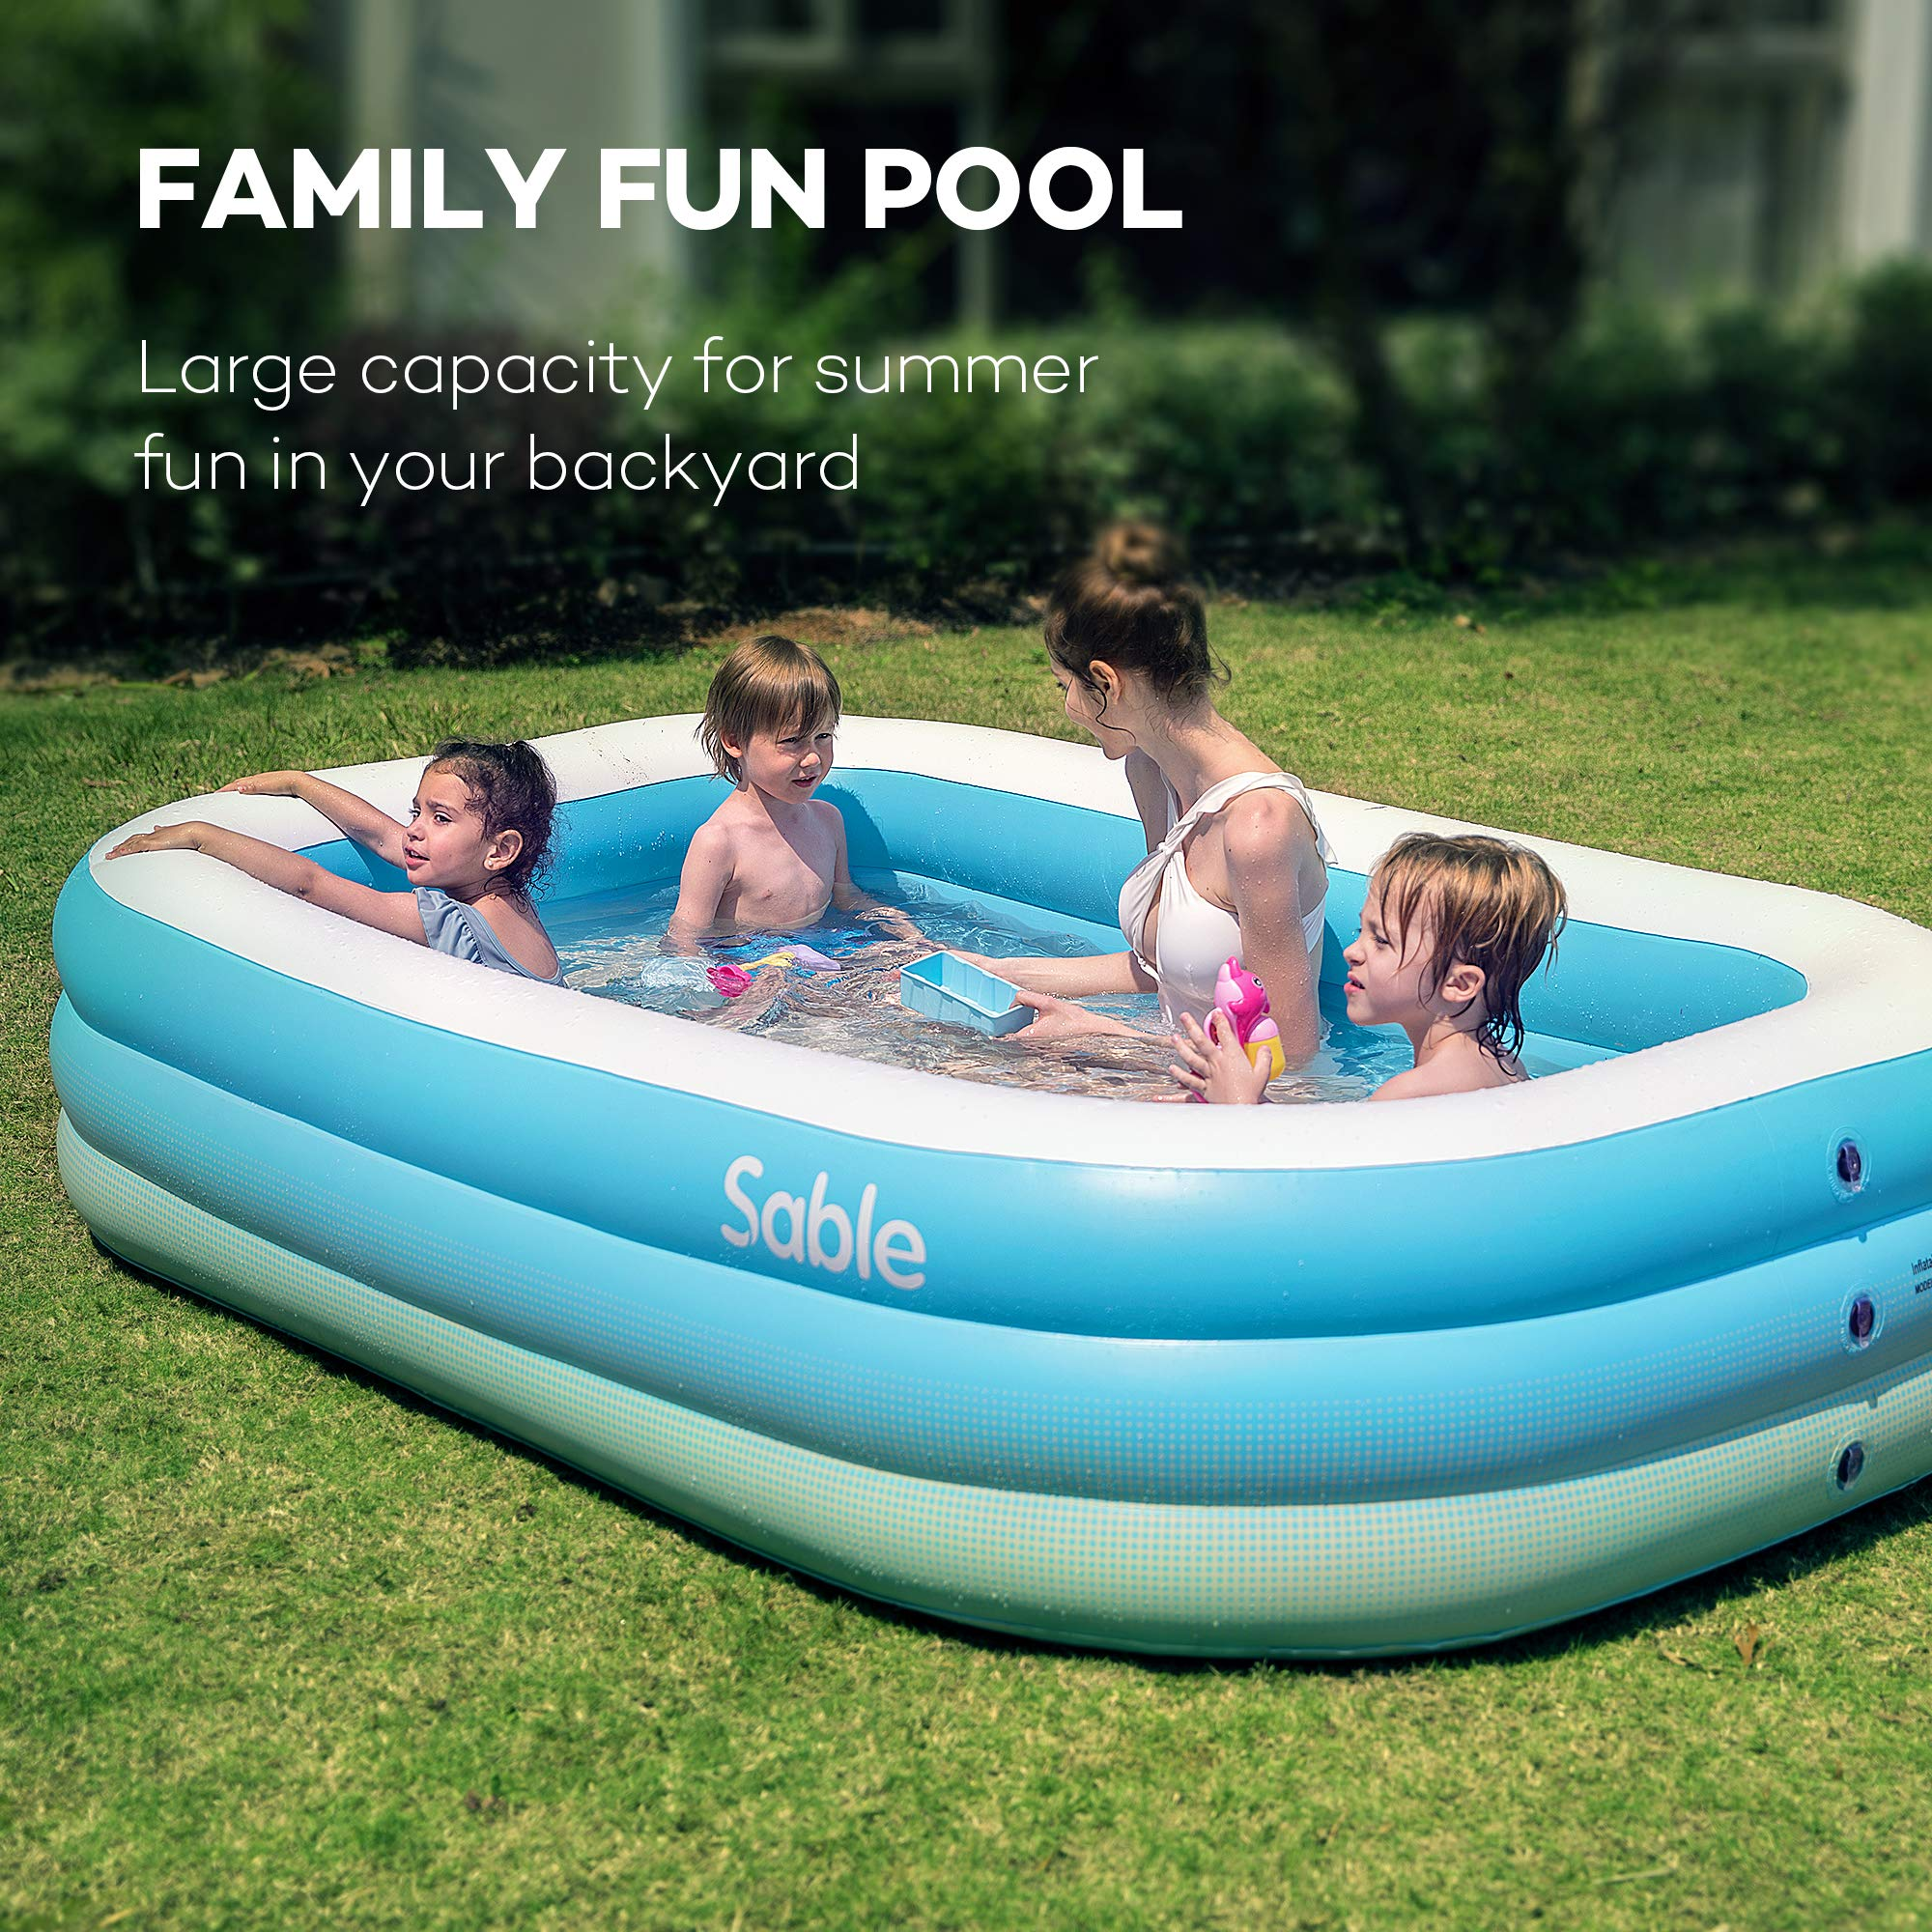 Sable Inflatable Pool, Family Swim Center Pool for Kids, Adults, Backyard, Outdoor, 92'' X 56'' X 20'', for Ages 3+ by Sable (Image #1)